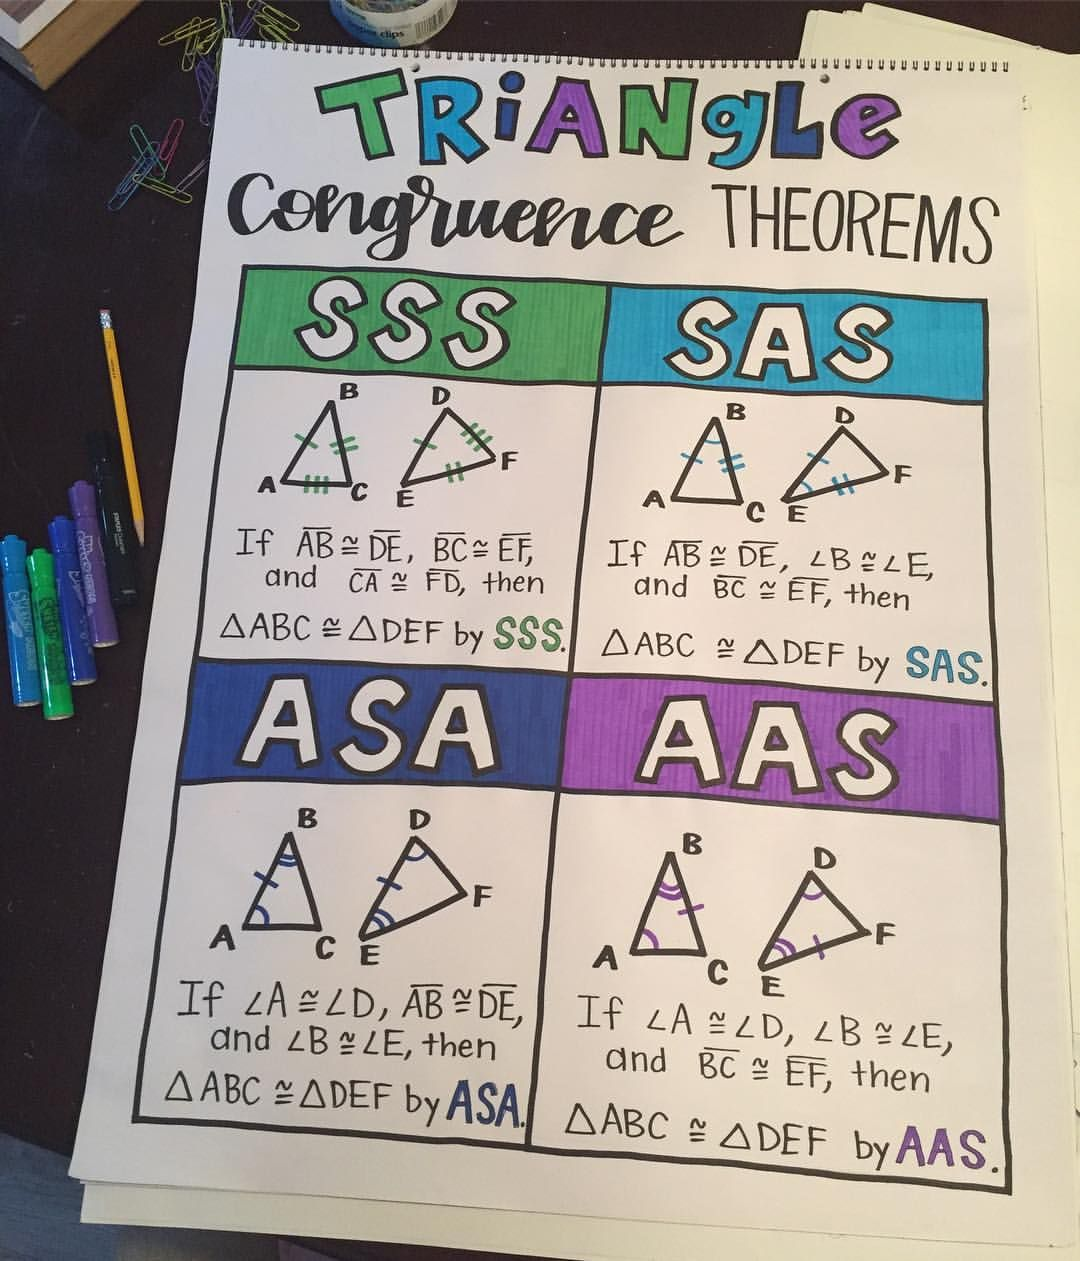 I Ve Got So Much Sas Triangle Congruence Theorems